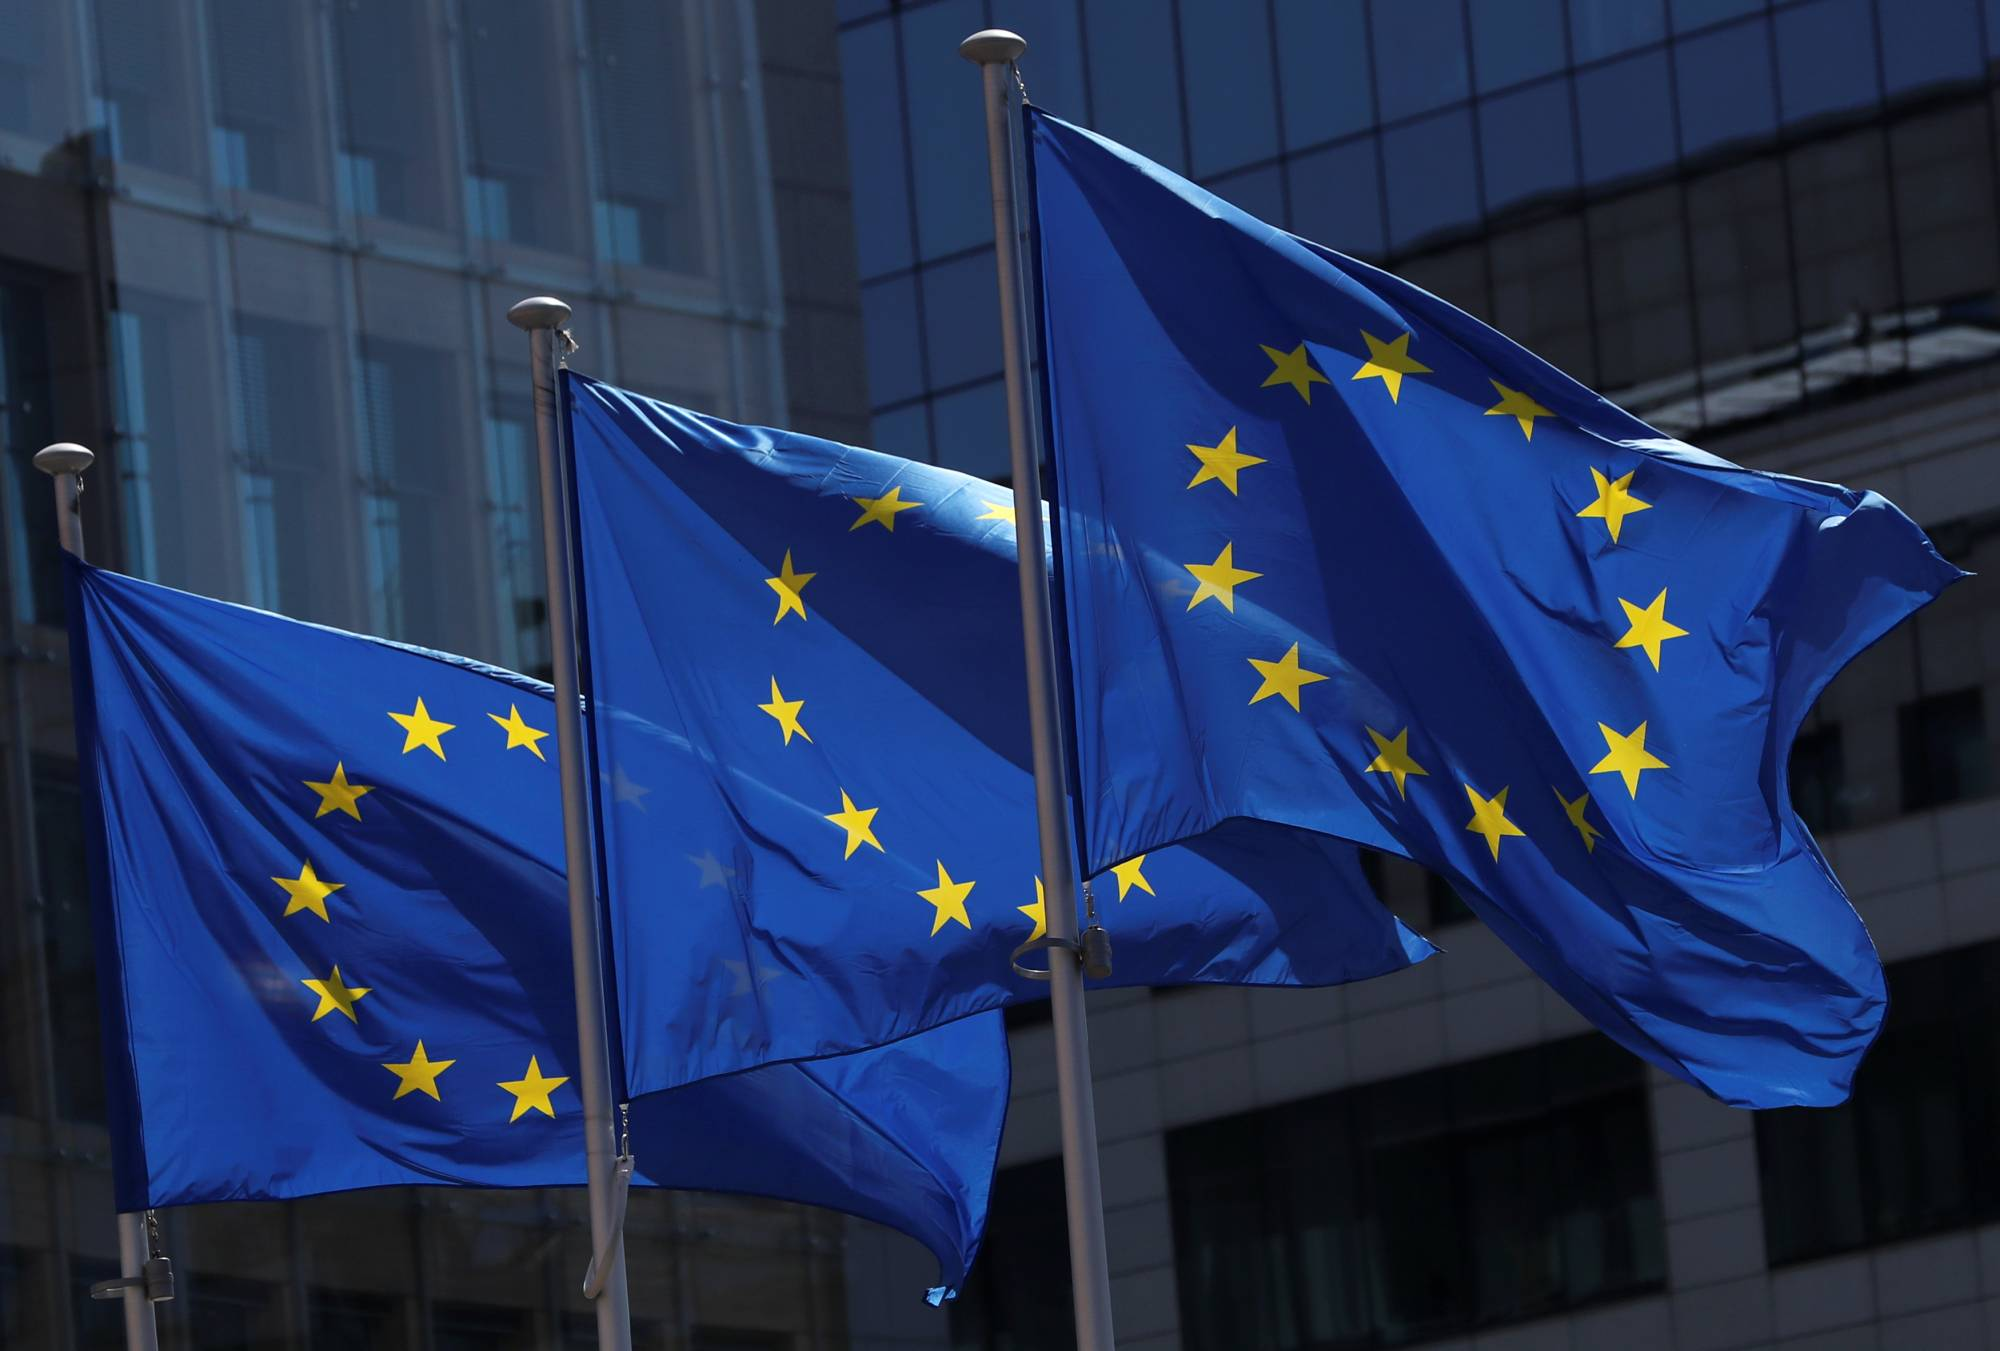 The 27-member European Union is considering allowing travelers from China to visit in return for the Asian country lifting its travel ban for EU nations and will also call on Japan and other countries on the list to remove their travel restrictions. | REUTERS